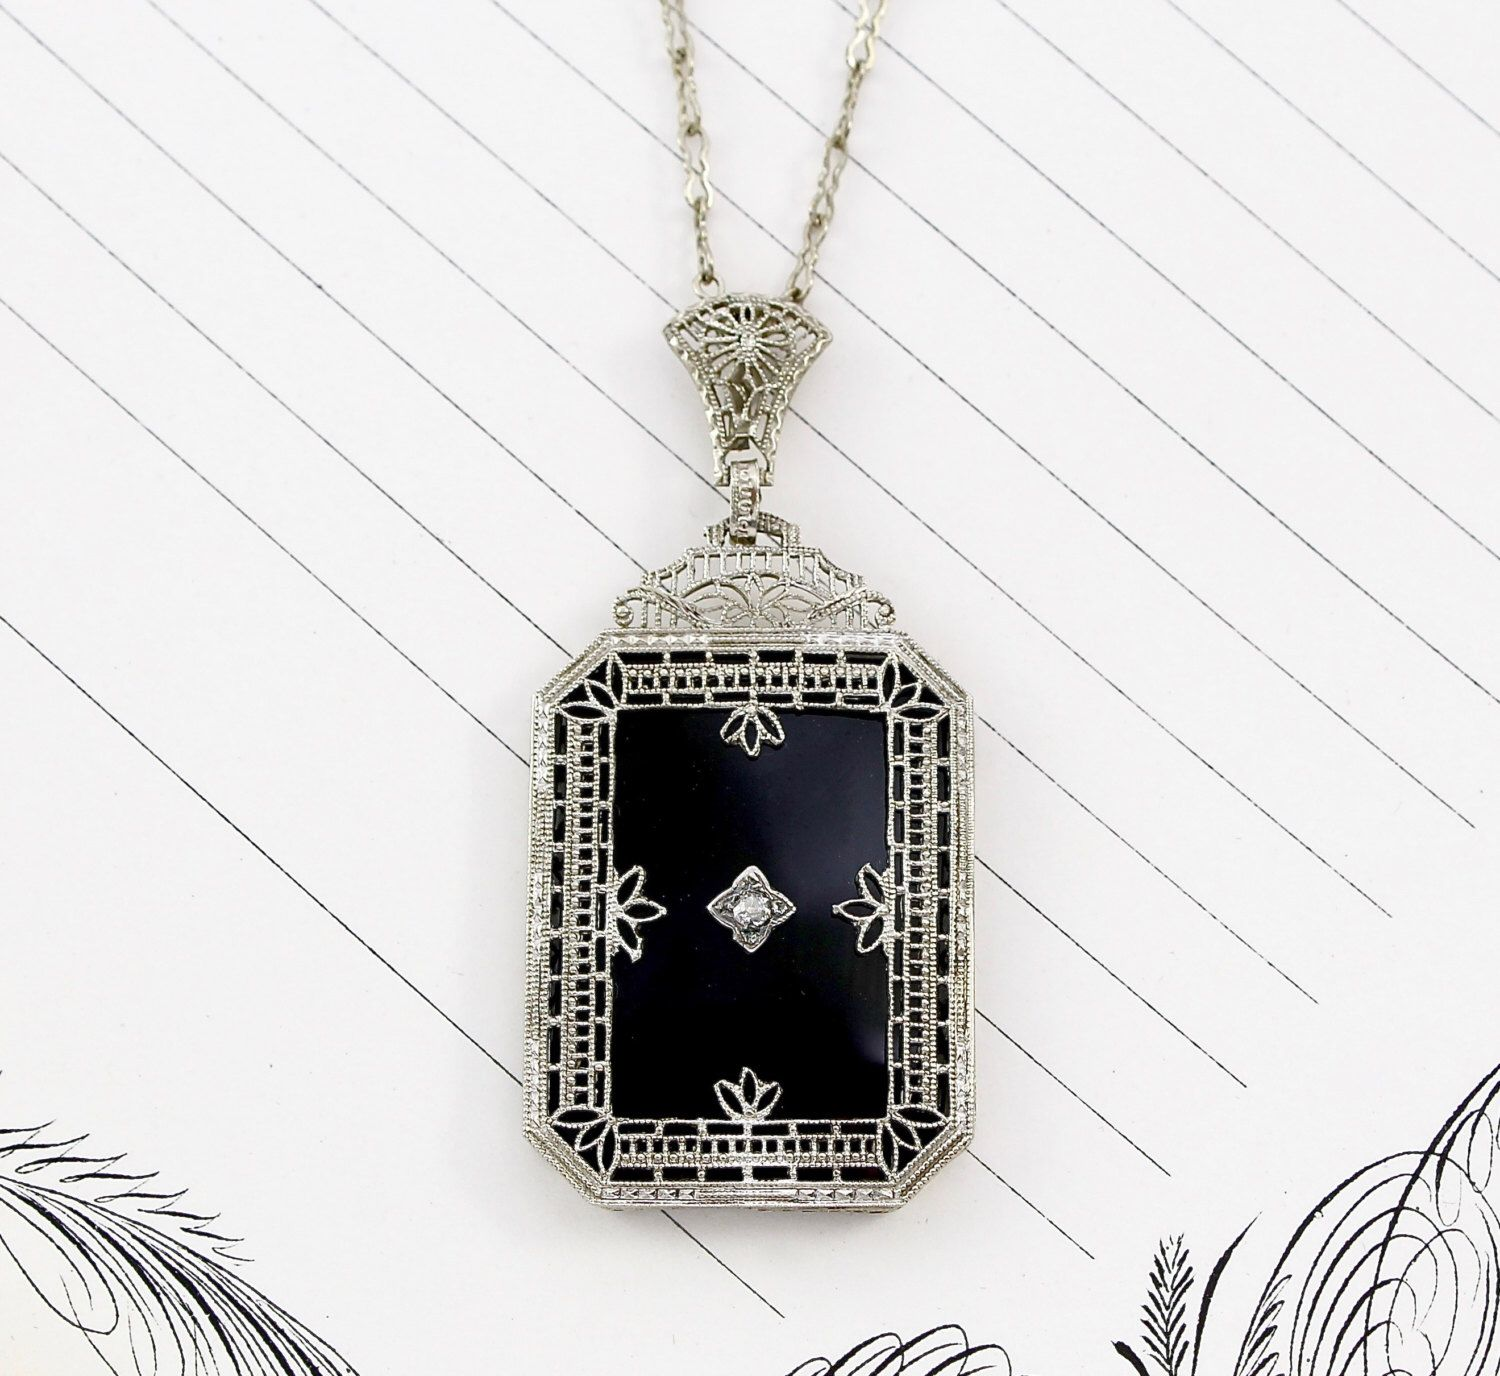 Art Deco 14k Filigree Black Onyx & Diamond Lavaliere Necklace, Antique White Gold, Gothic Bride Bridal Statement Pendant, Holiday Jewelry by TheEdenCollective on Etsy https://www.etsy.com/listing/260814655/art-deco-14k-filigree-black-onyx-diamond